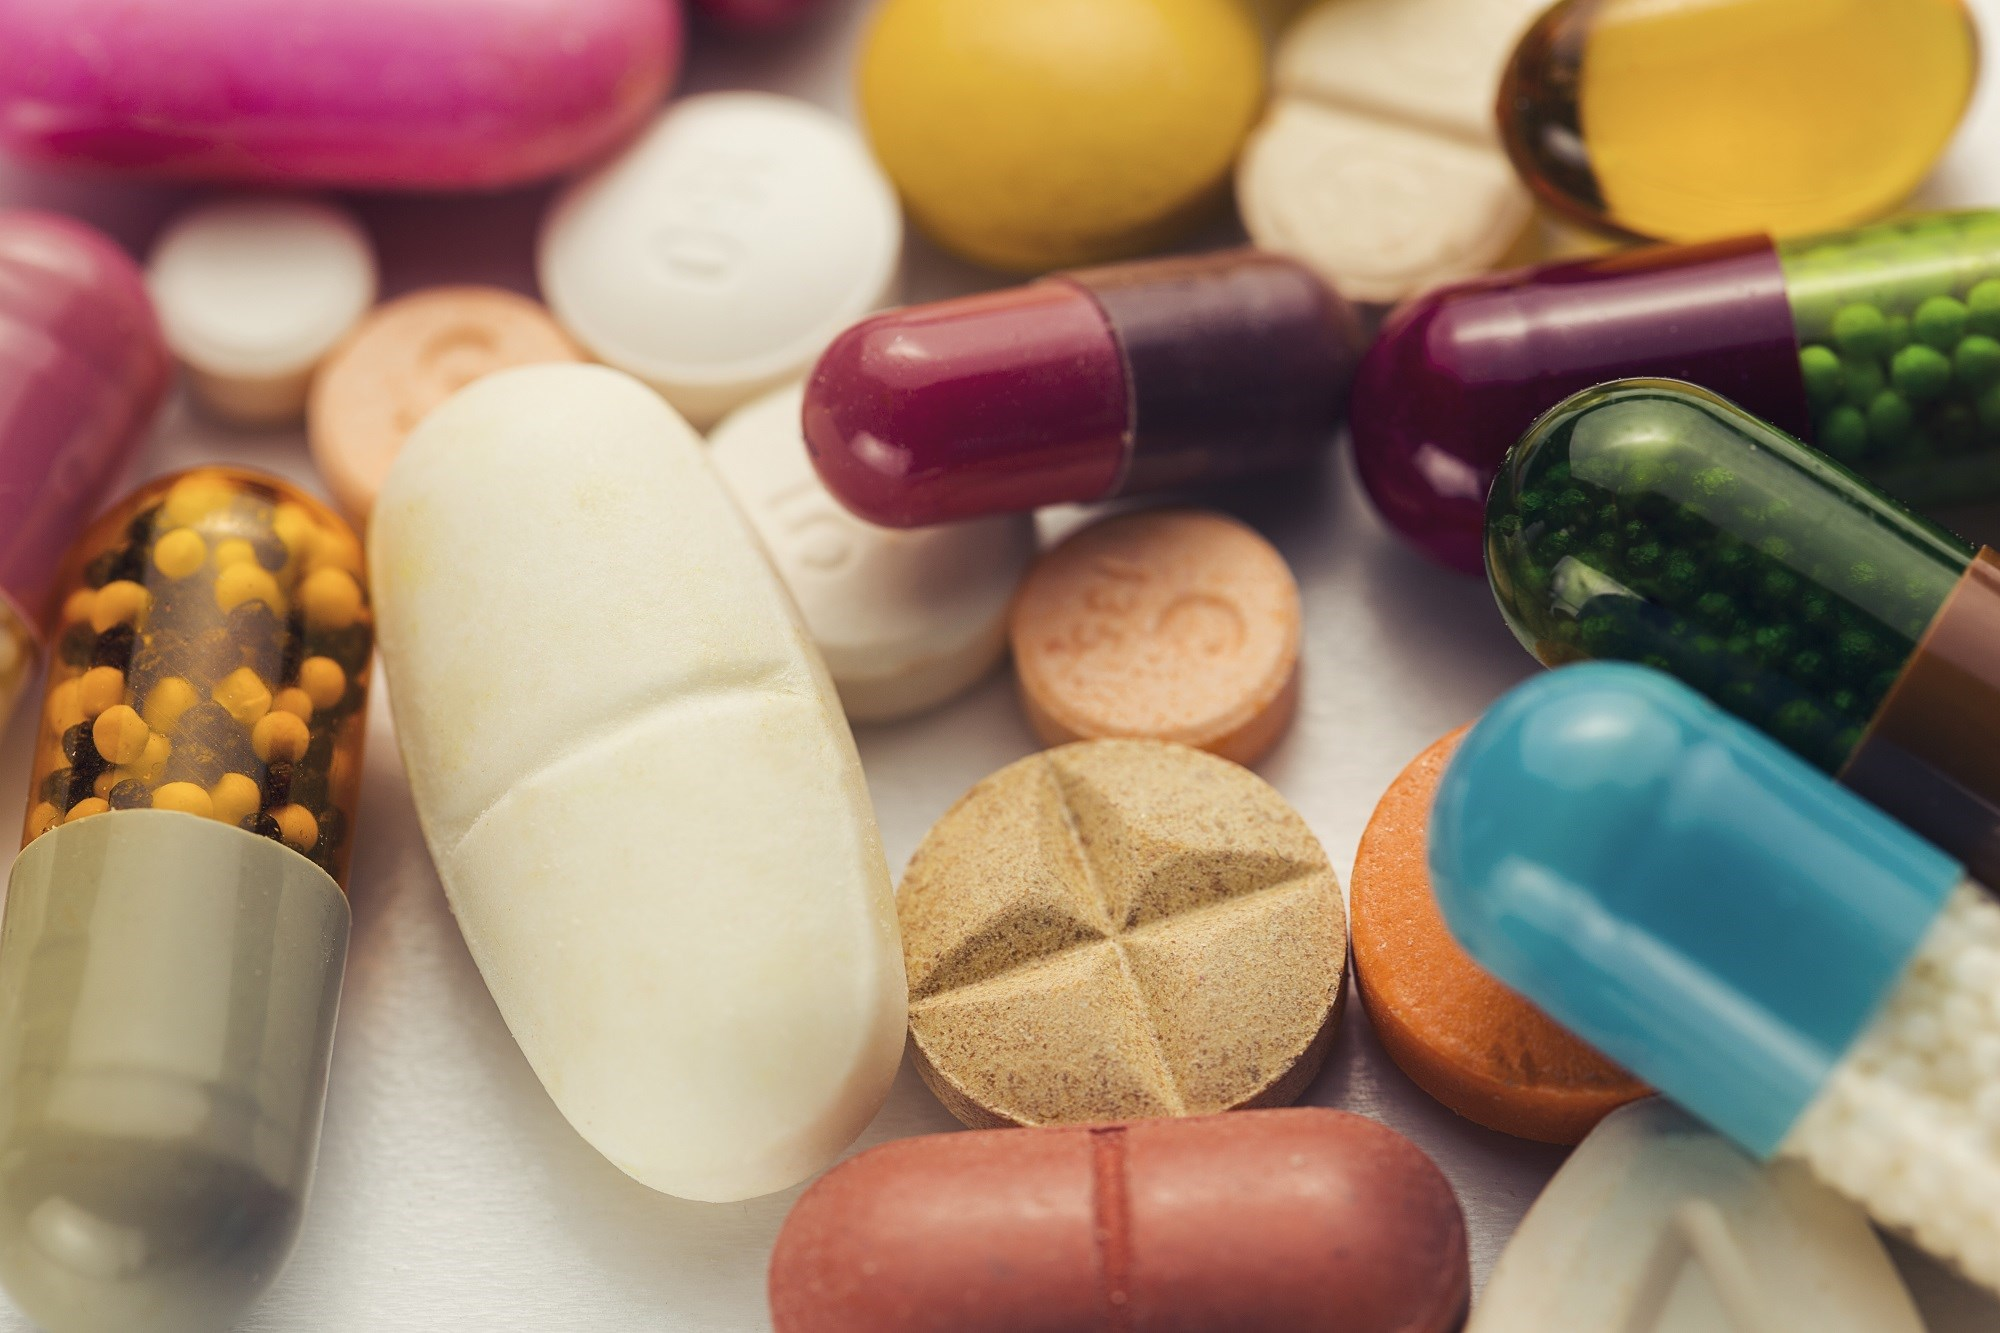 Approximately one-third of US children and adolescents use dietary supplements.